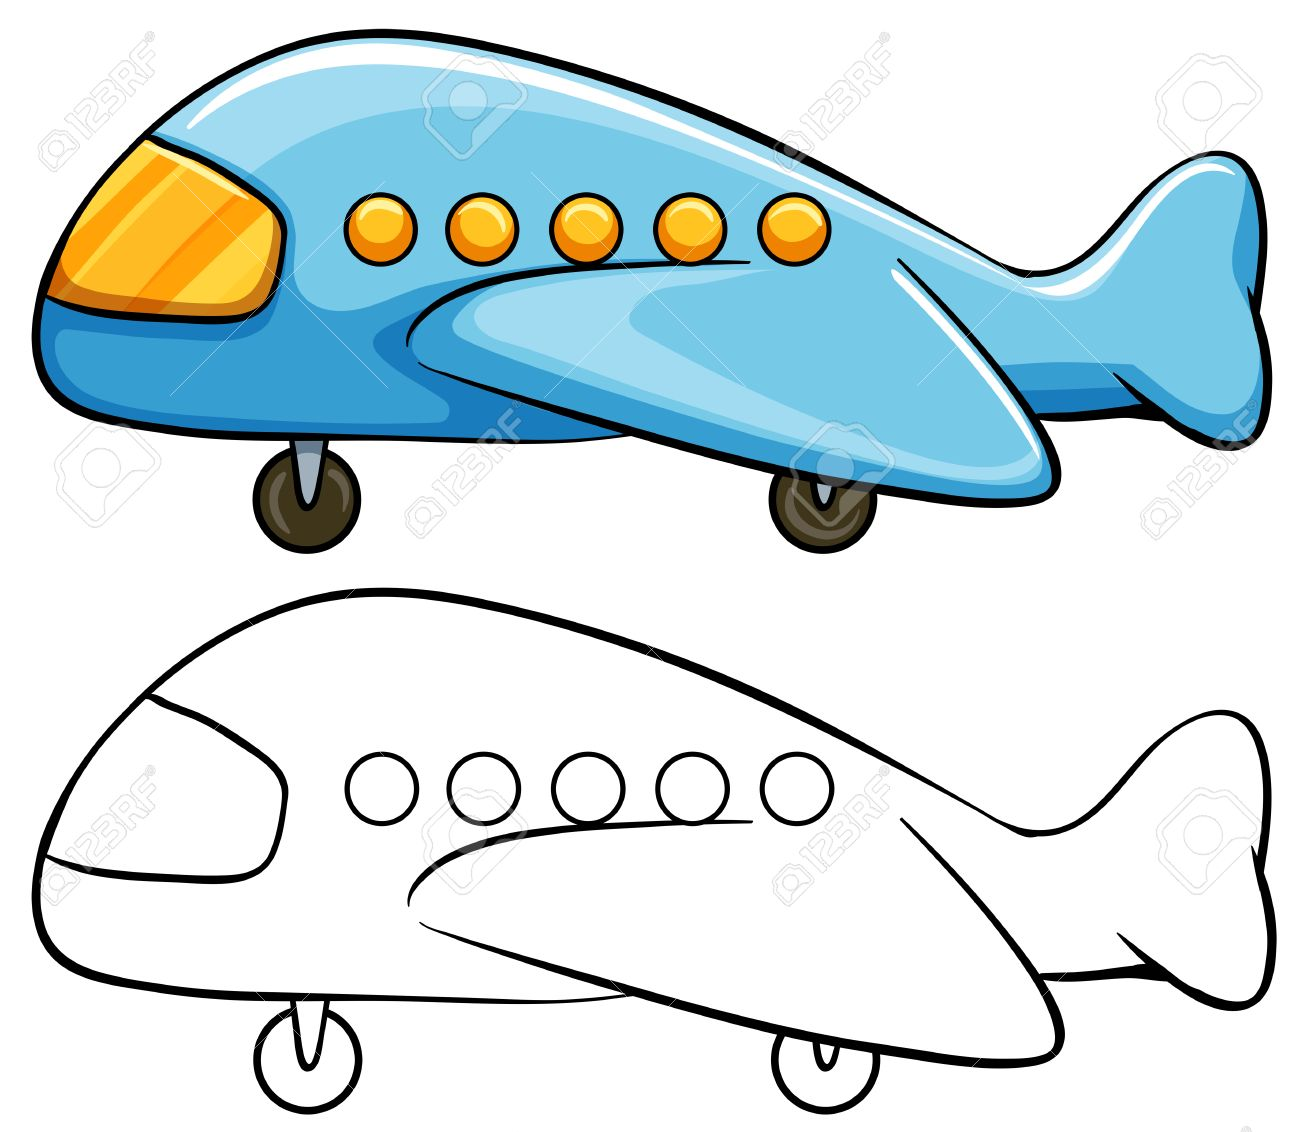 Toy Airplane With Simple Drawing Royalty Free Cliparts Vectors